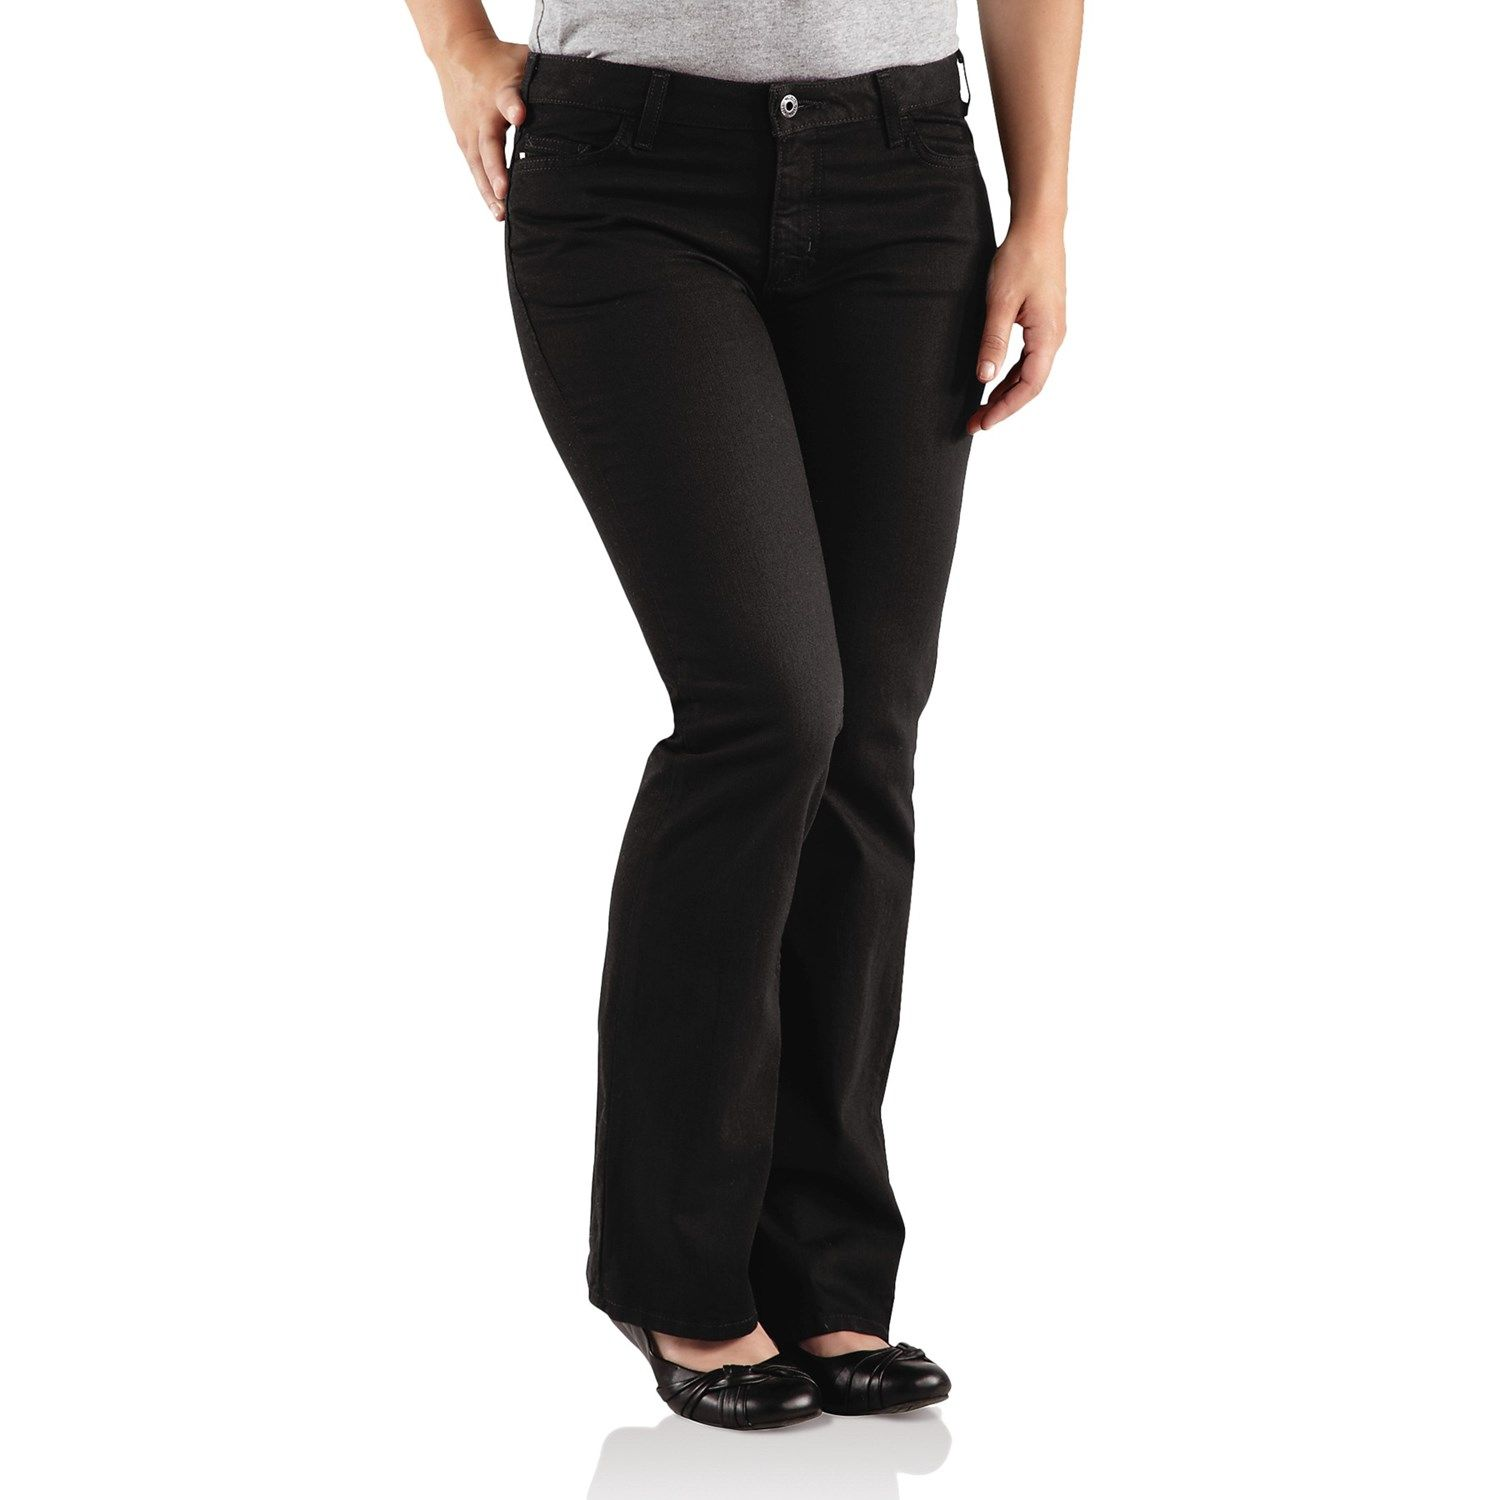 Carhartt #BasicFit #NormalPants #Black | Pants for Women ...